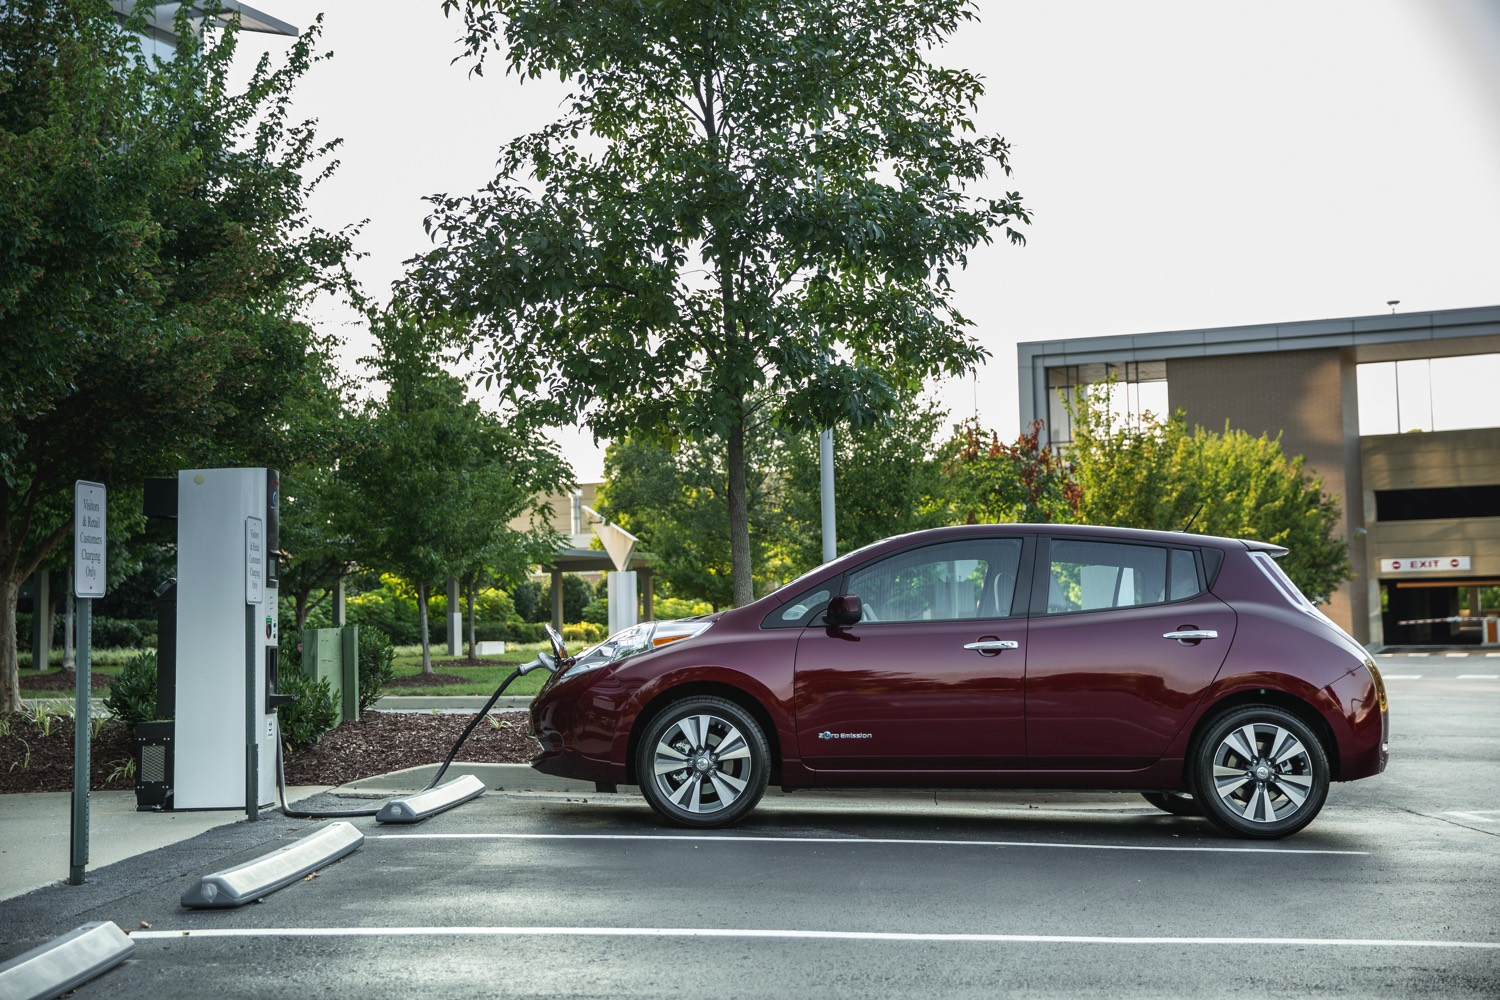 2016 Nissan Leaf - the best-selling electric car.